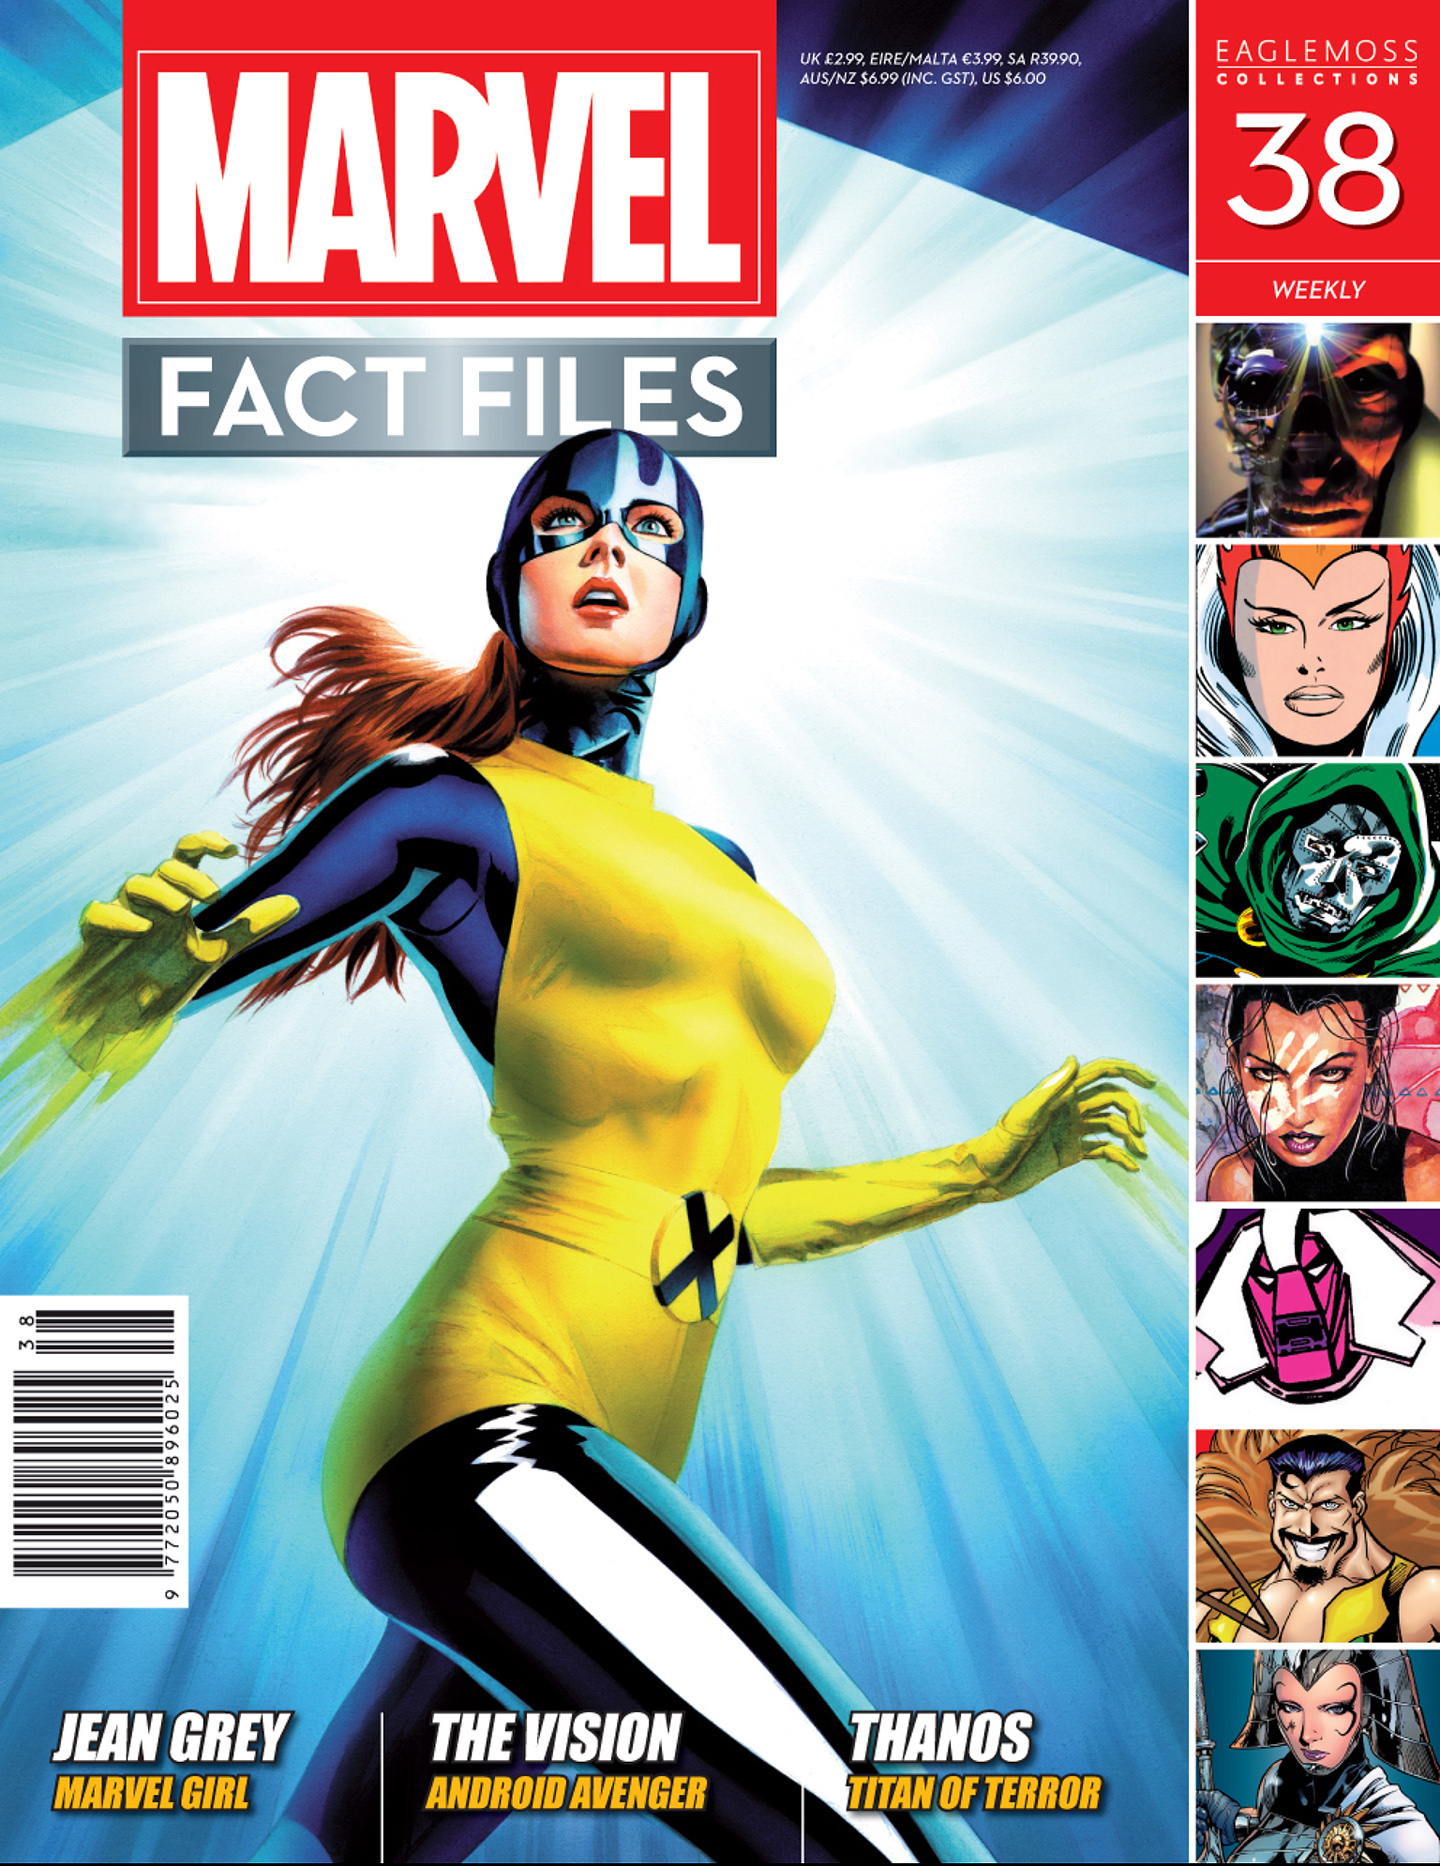 Marvel Fact Files 38 Page 1